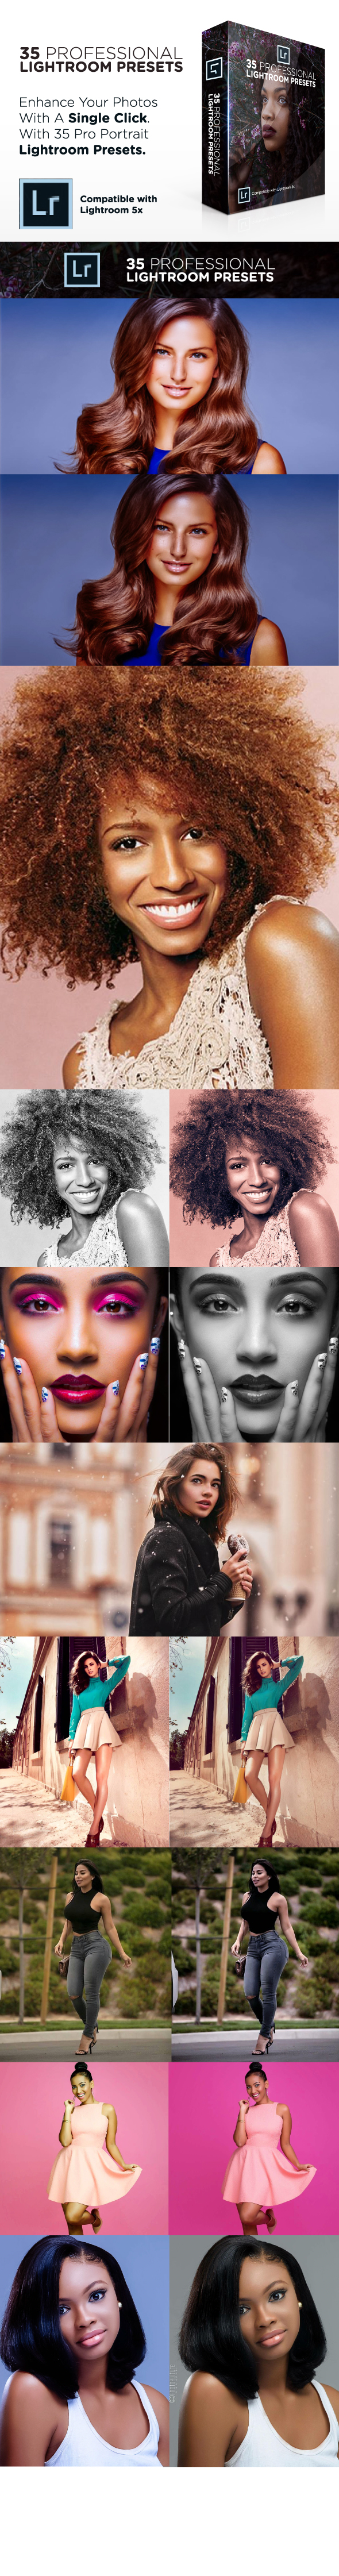 35 Professional Portrait Lightroom Presets - Portrait Lightroom Presets